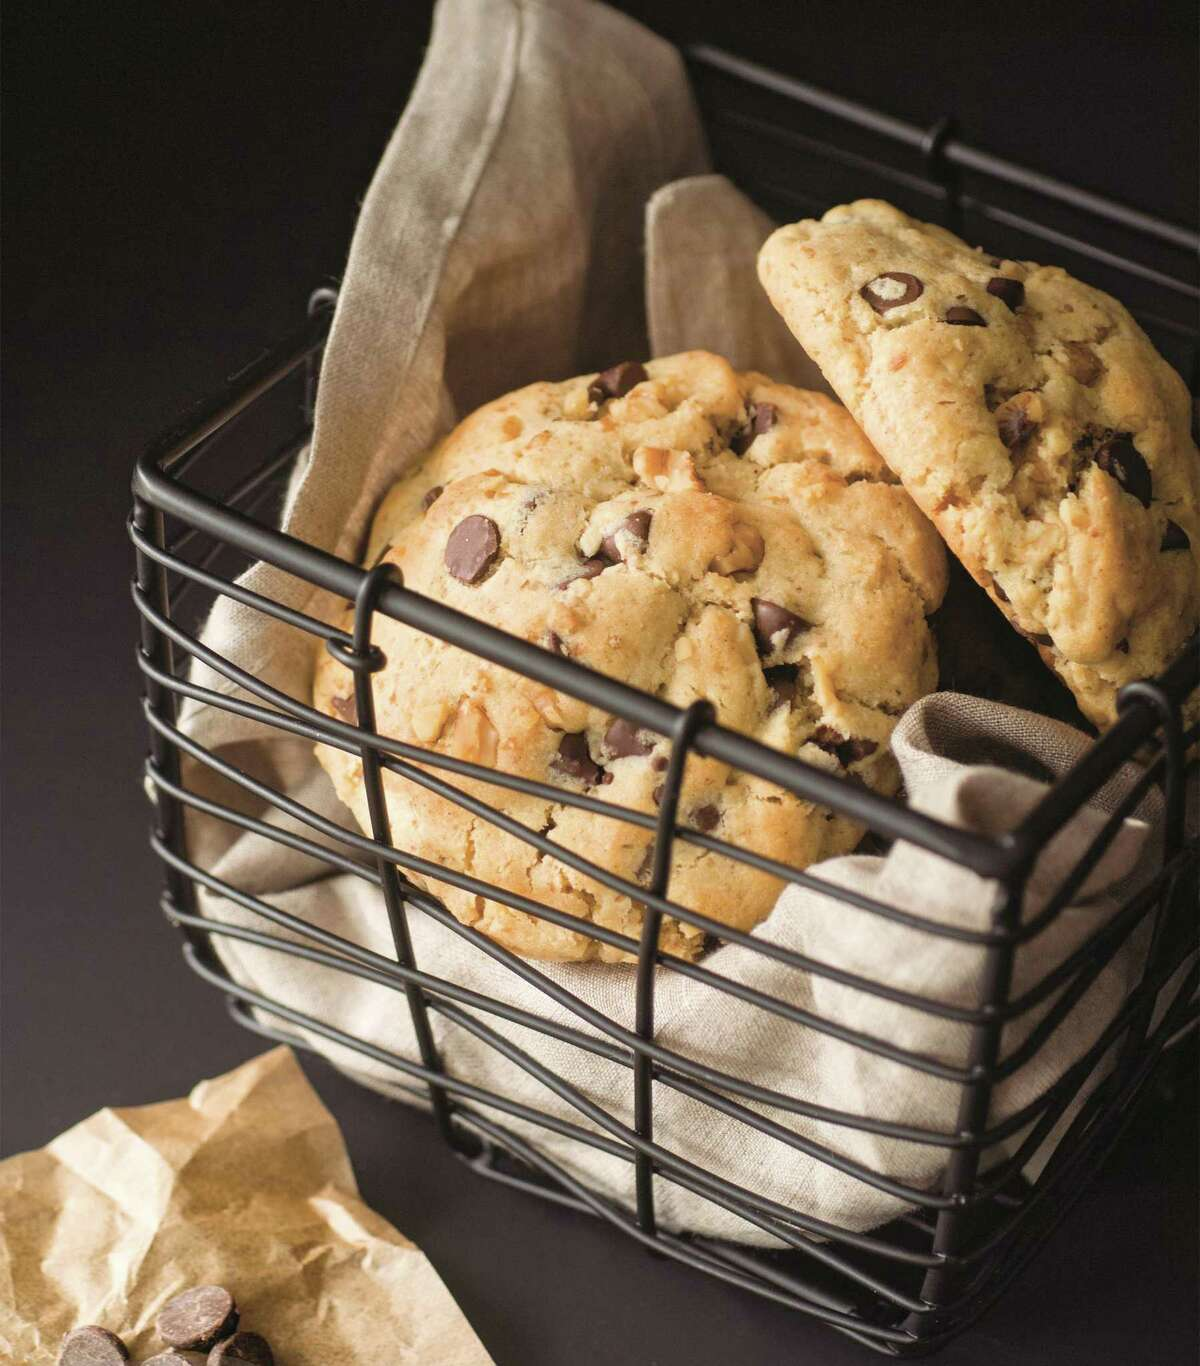 New York City Giant Chocolate Chip Walnut Cookies (recipe in column): These cookies replicate those made at a famous bakery in NYC.